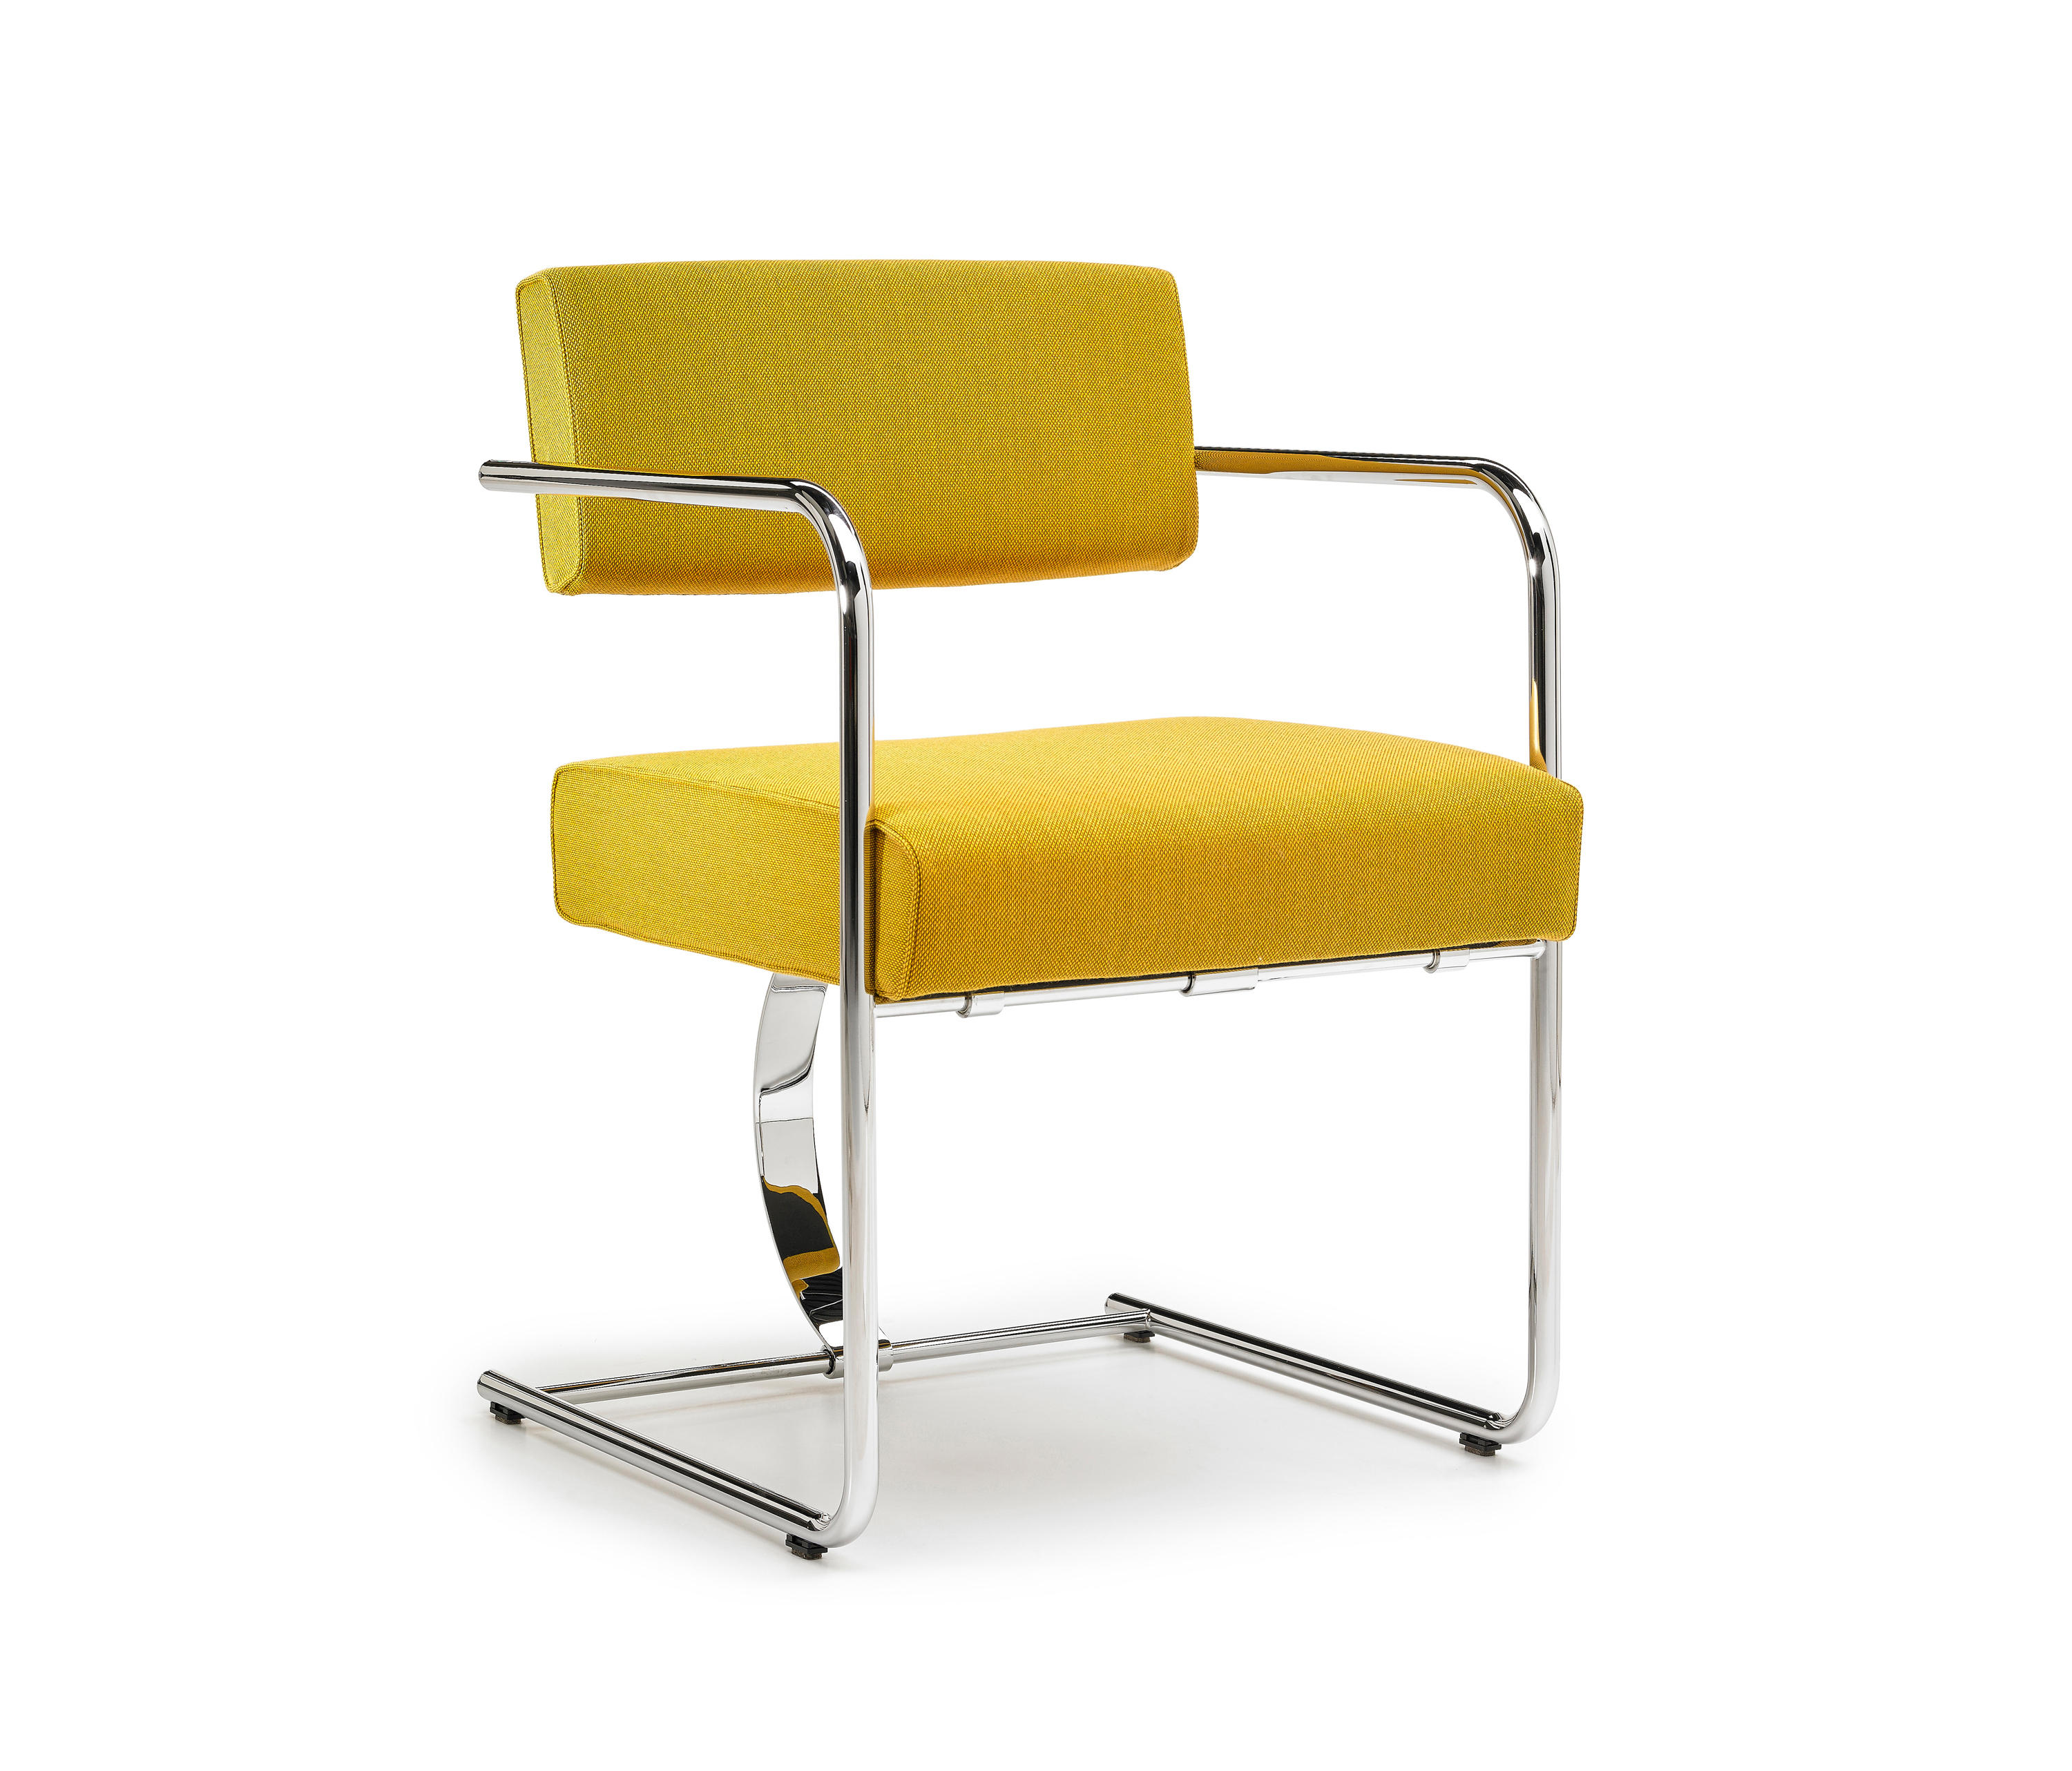 Cantilever chair steel besucherst hle von vs architonic for Chair vs chairman